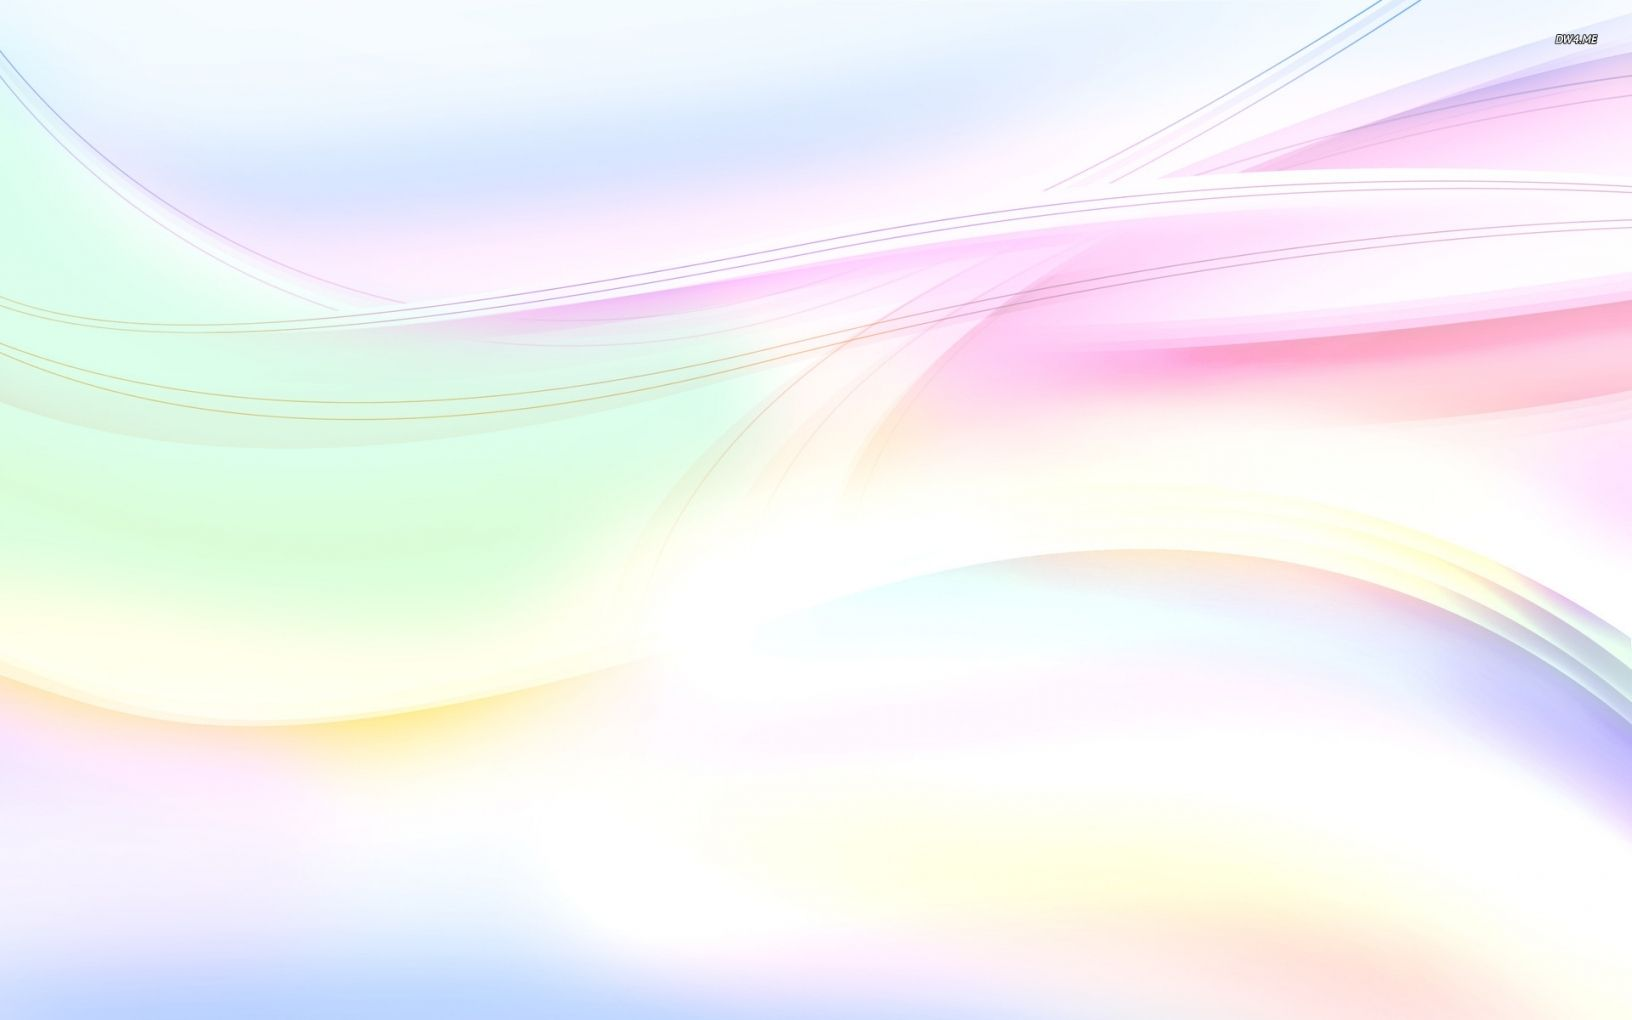 Abstract Pastel Wallpapers Top Free Abstract Pastel Backgrounds Wallpaperaccess